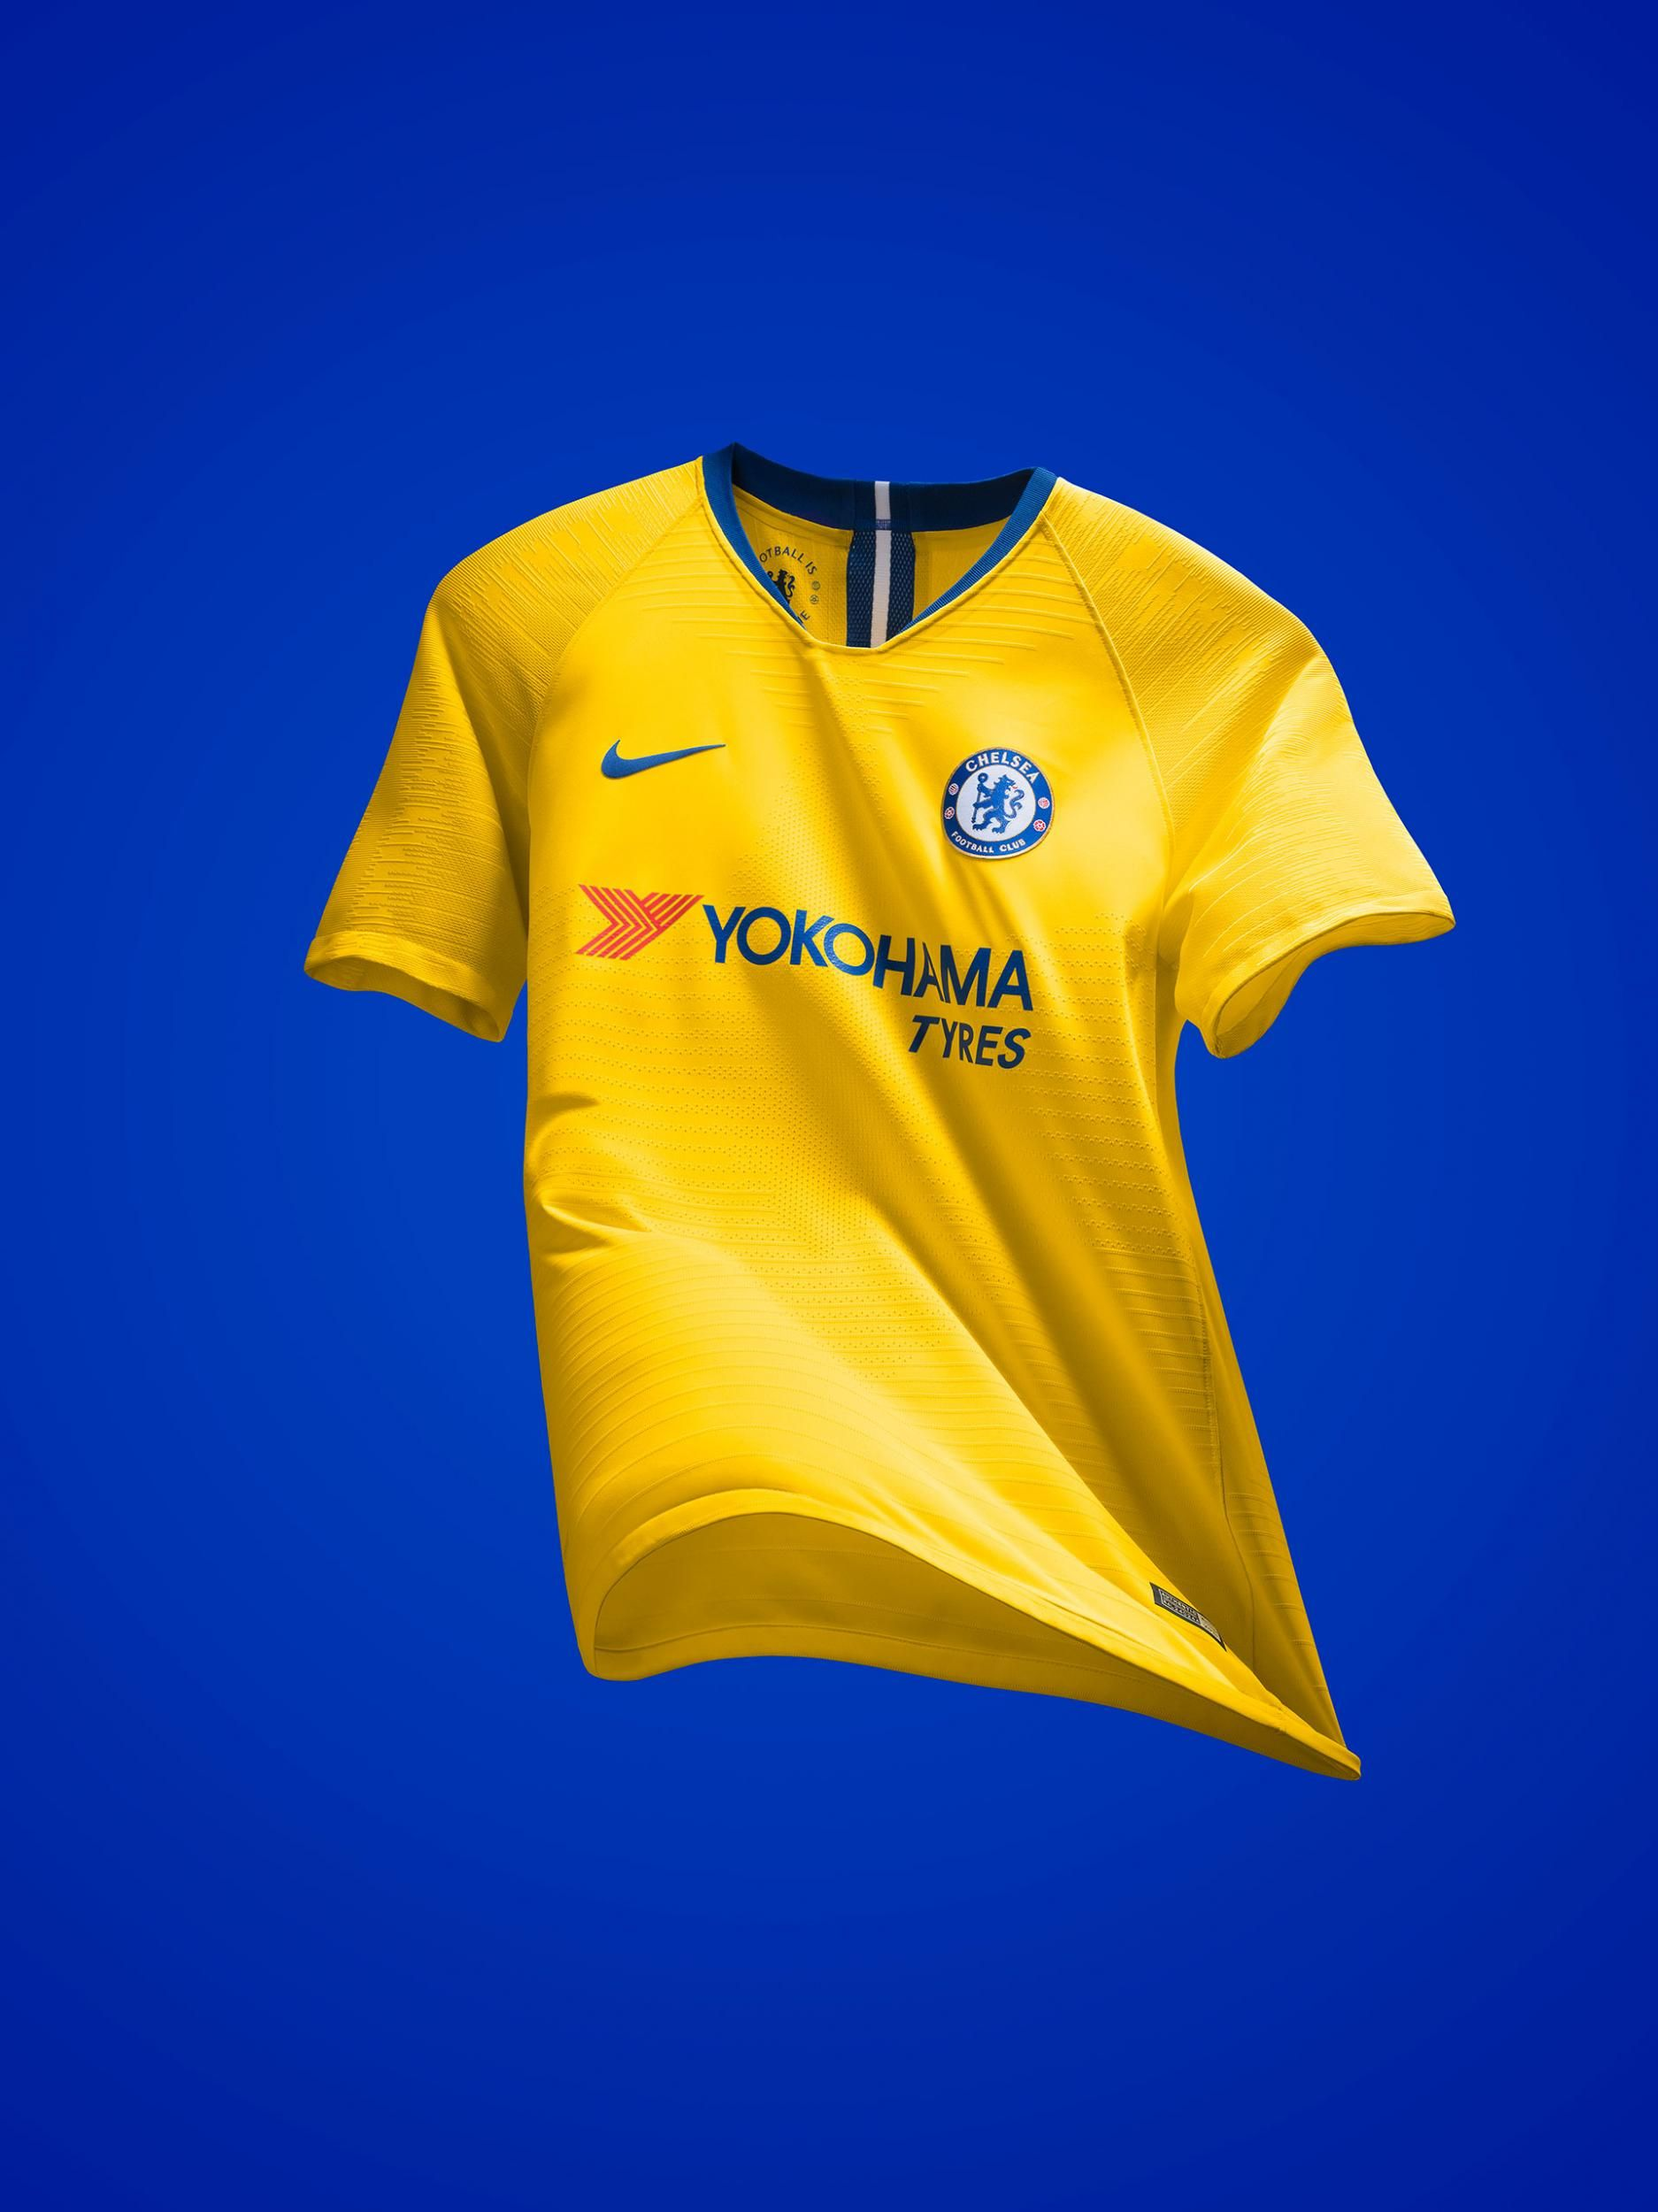 5a512af1c Chelsea away shirt for 2018-19.